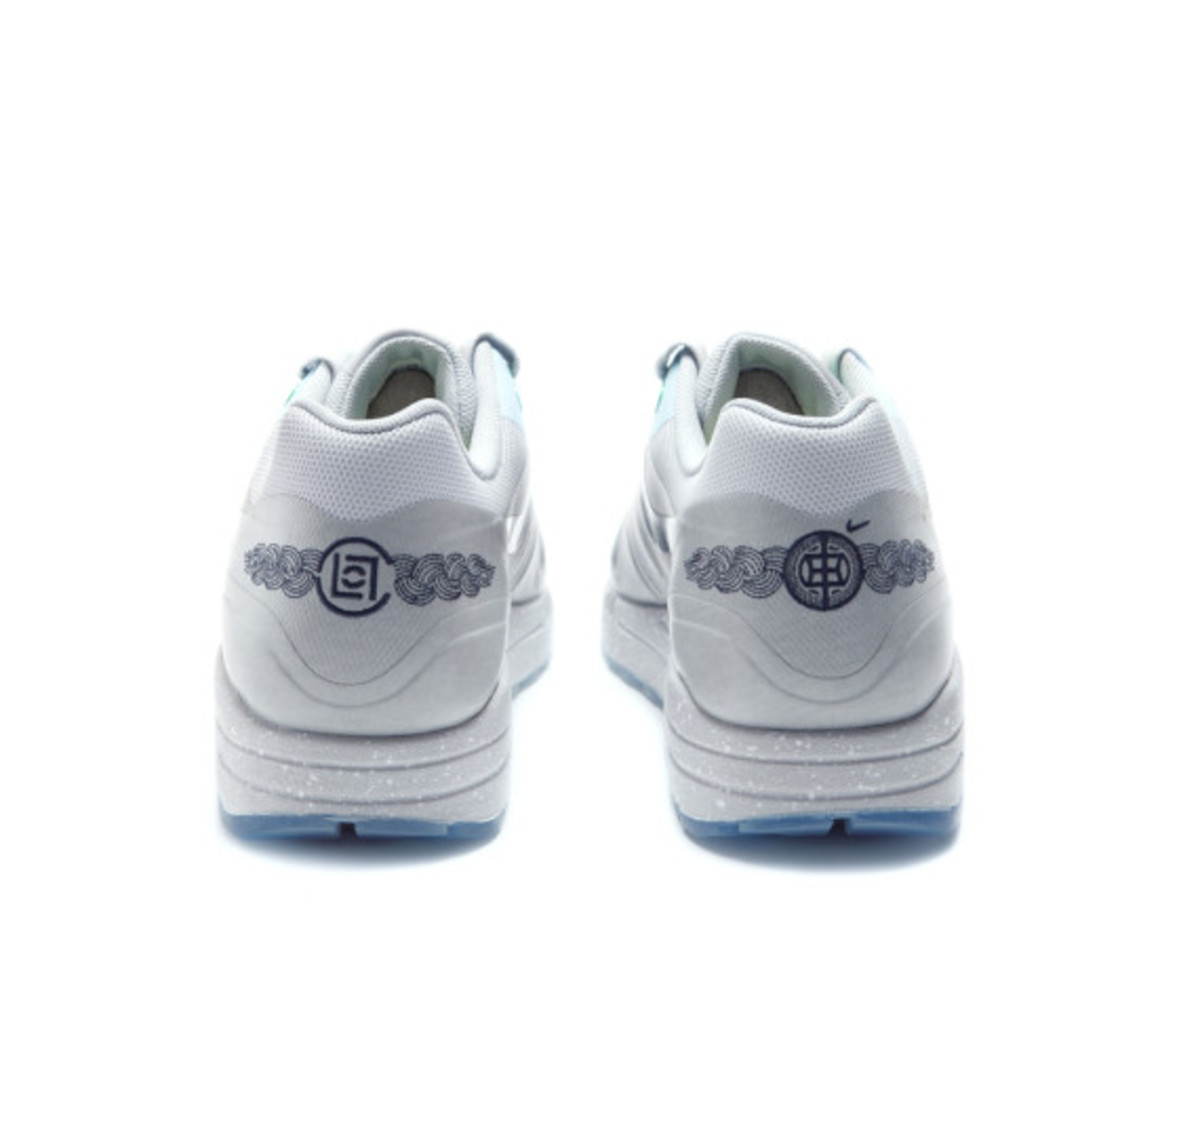 clot-nike-air-max-1-sp-003